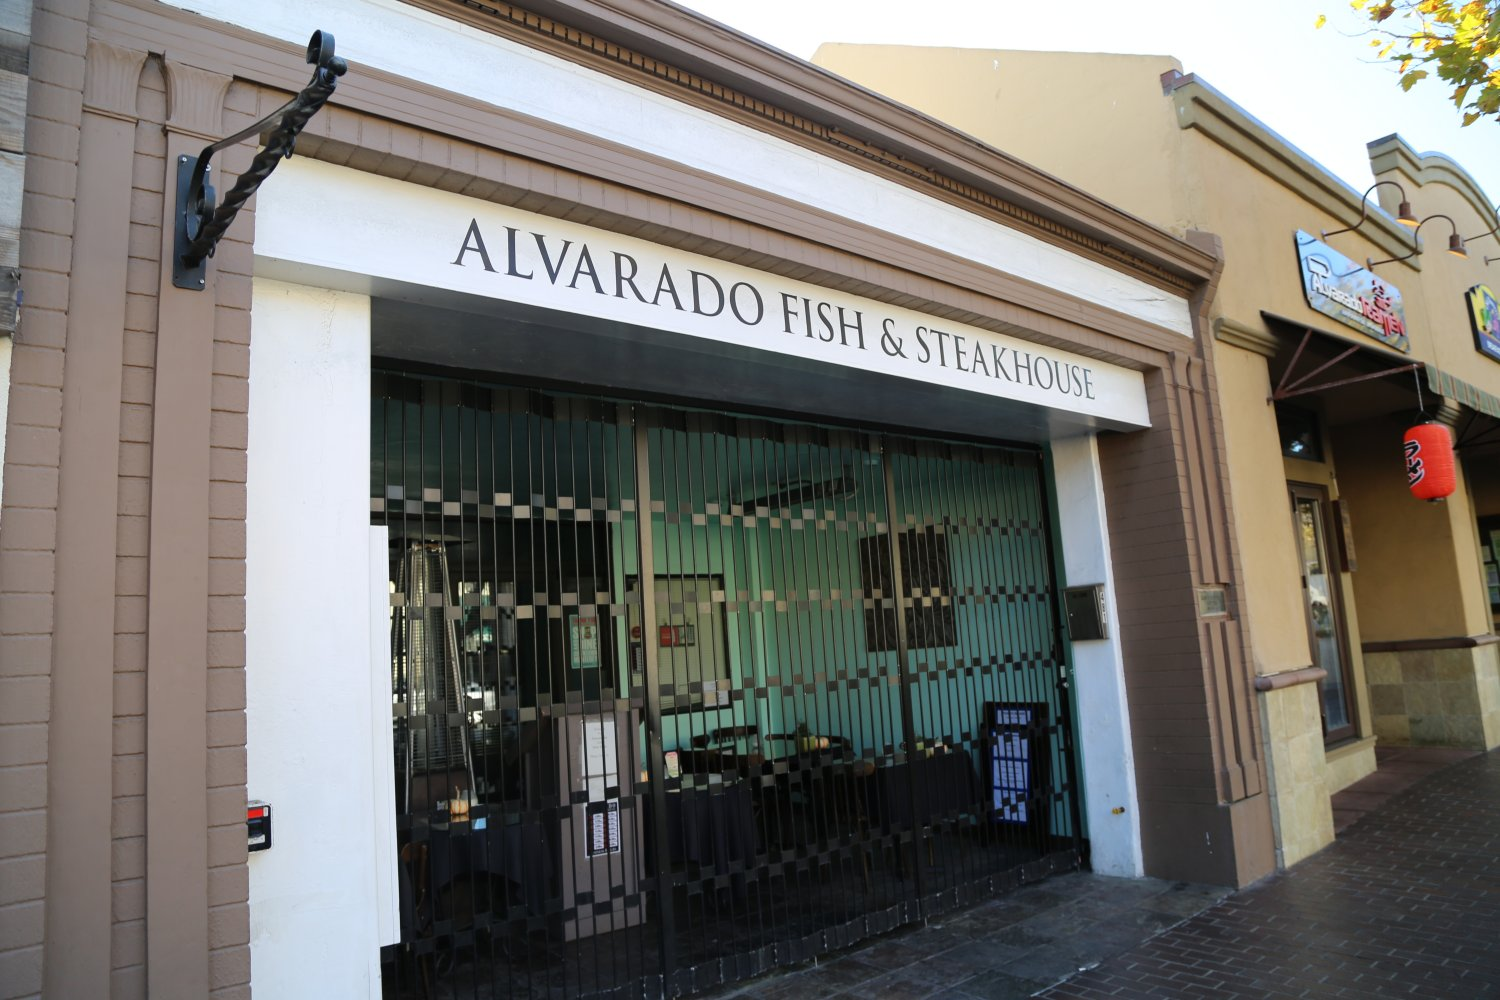 Alvarado Fish Steakhouse Is Located At 481 St In Downtown Monterey Small Restaurant Parking Available On Nearby Streets Or If Staying